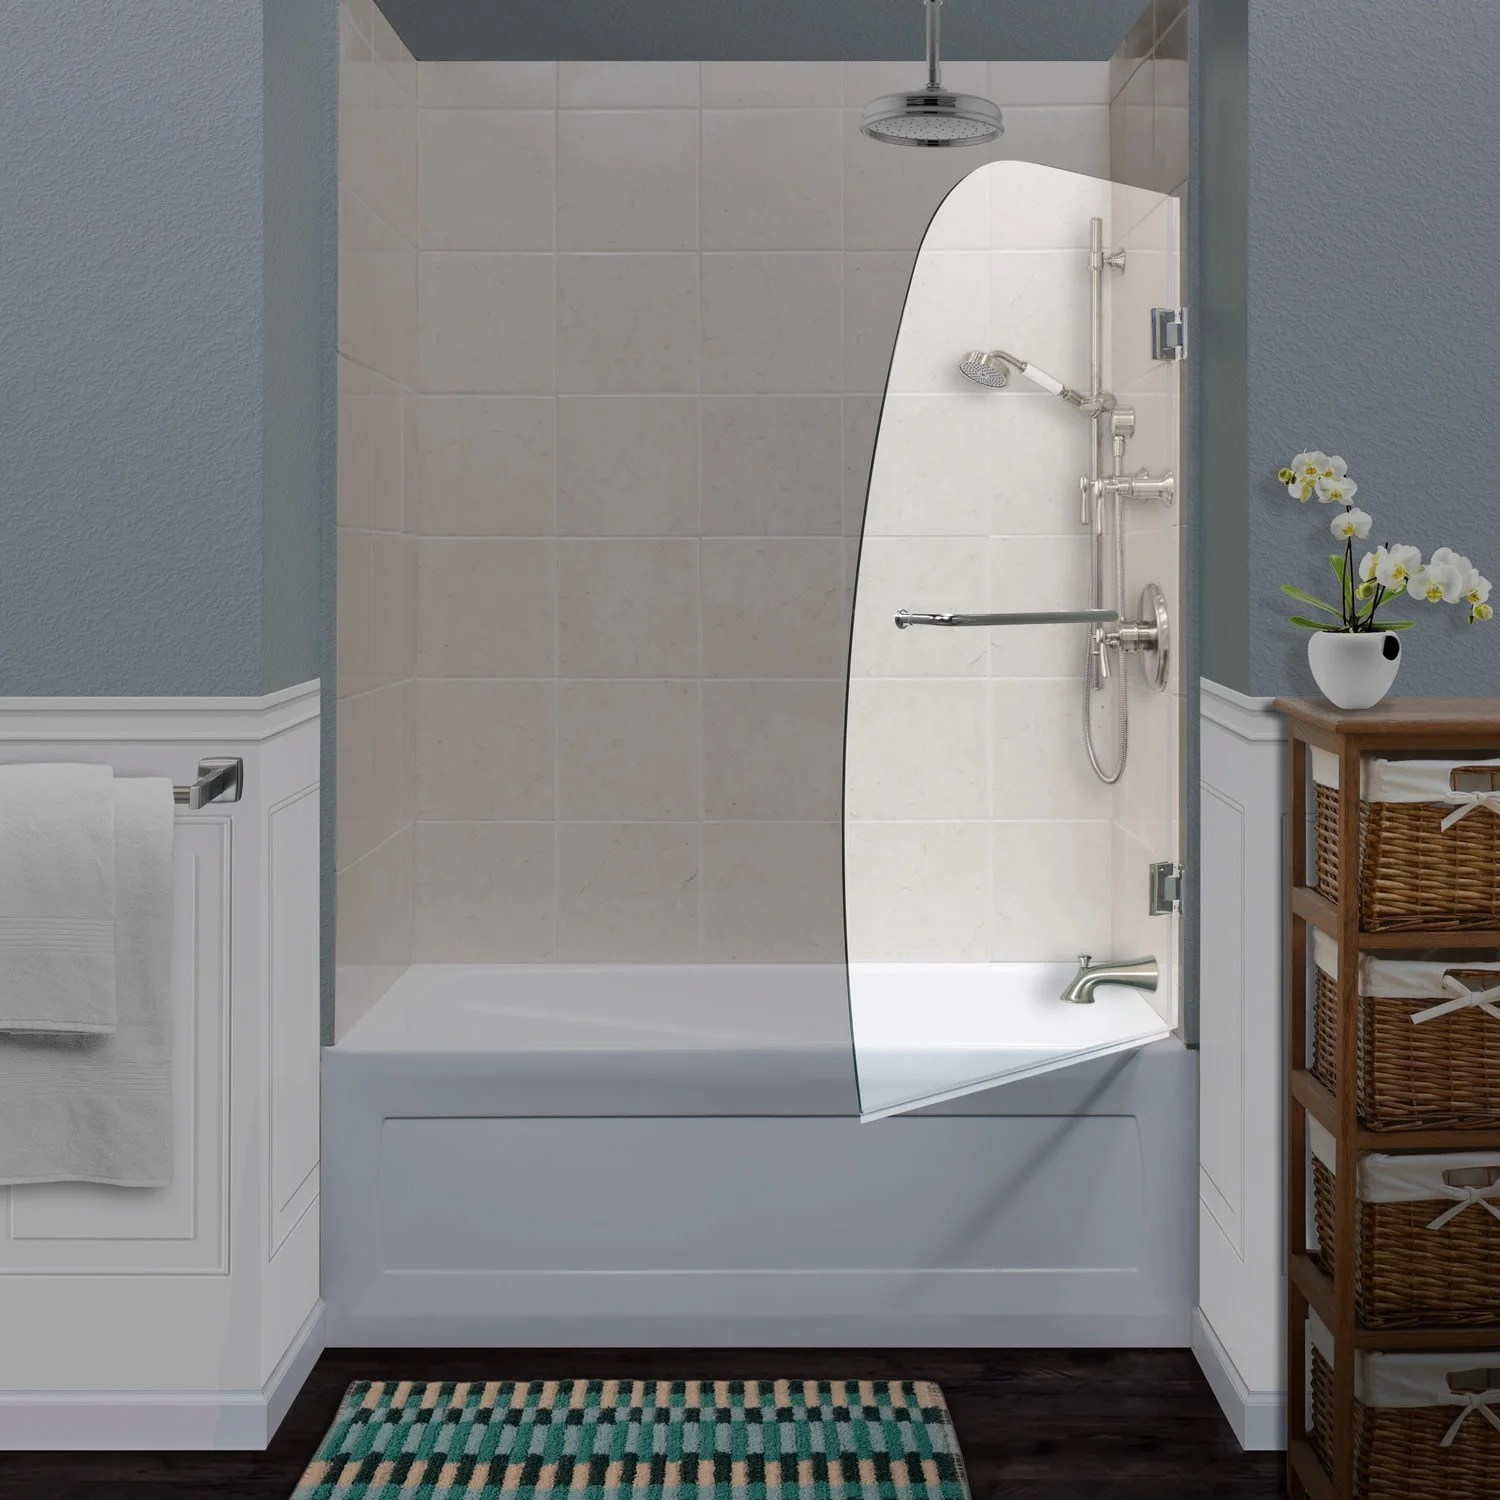 Miseno Msdcfl3458 58 High X 34 Wide Frameless Pivoting Tub Screen With Clear 1 4 Glass And H2off Technology